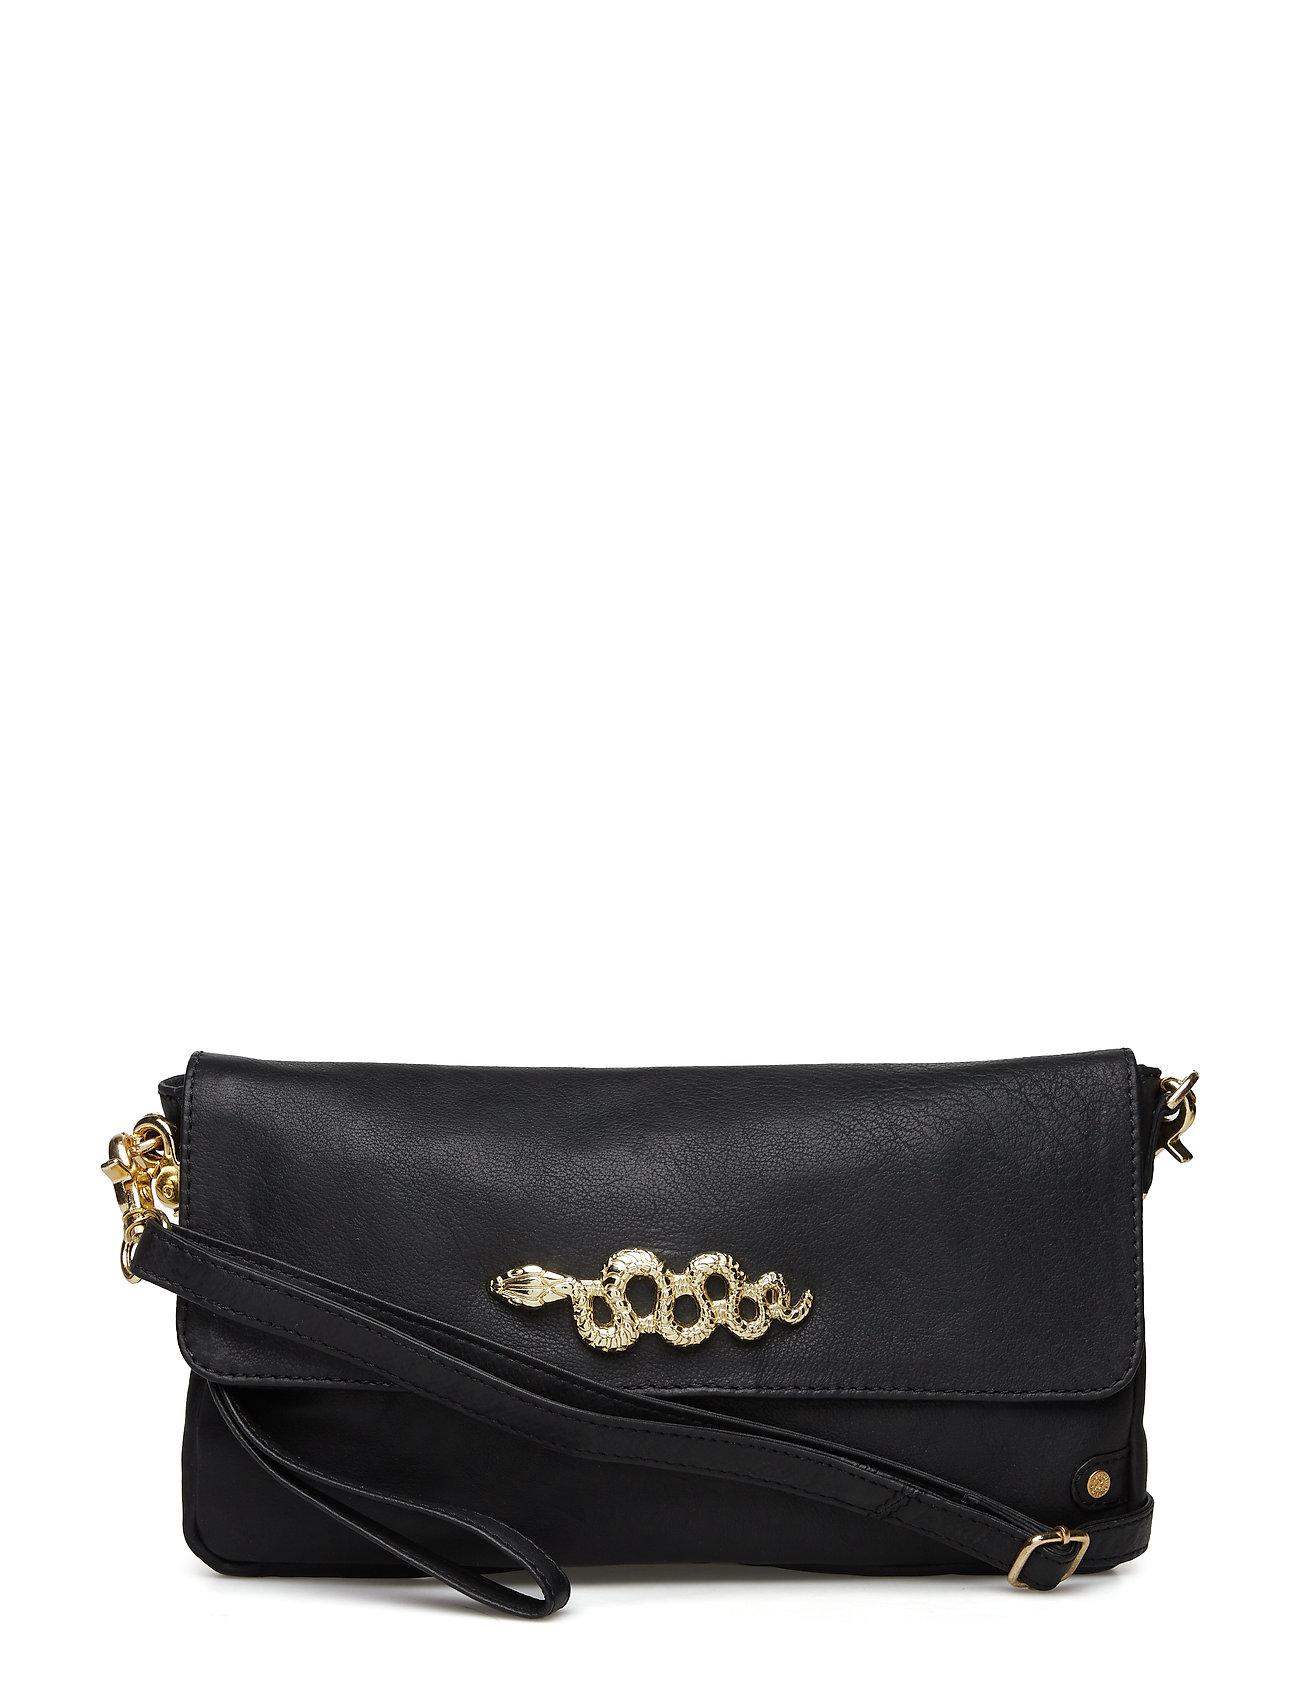 Image of Small Bag / Clutch Bags Small Shoulder Bags/crossbody Bags Sort DEPECHE (3100346501)